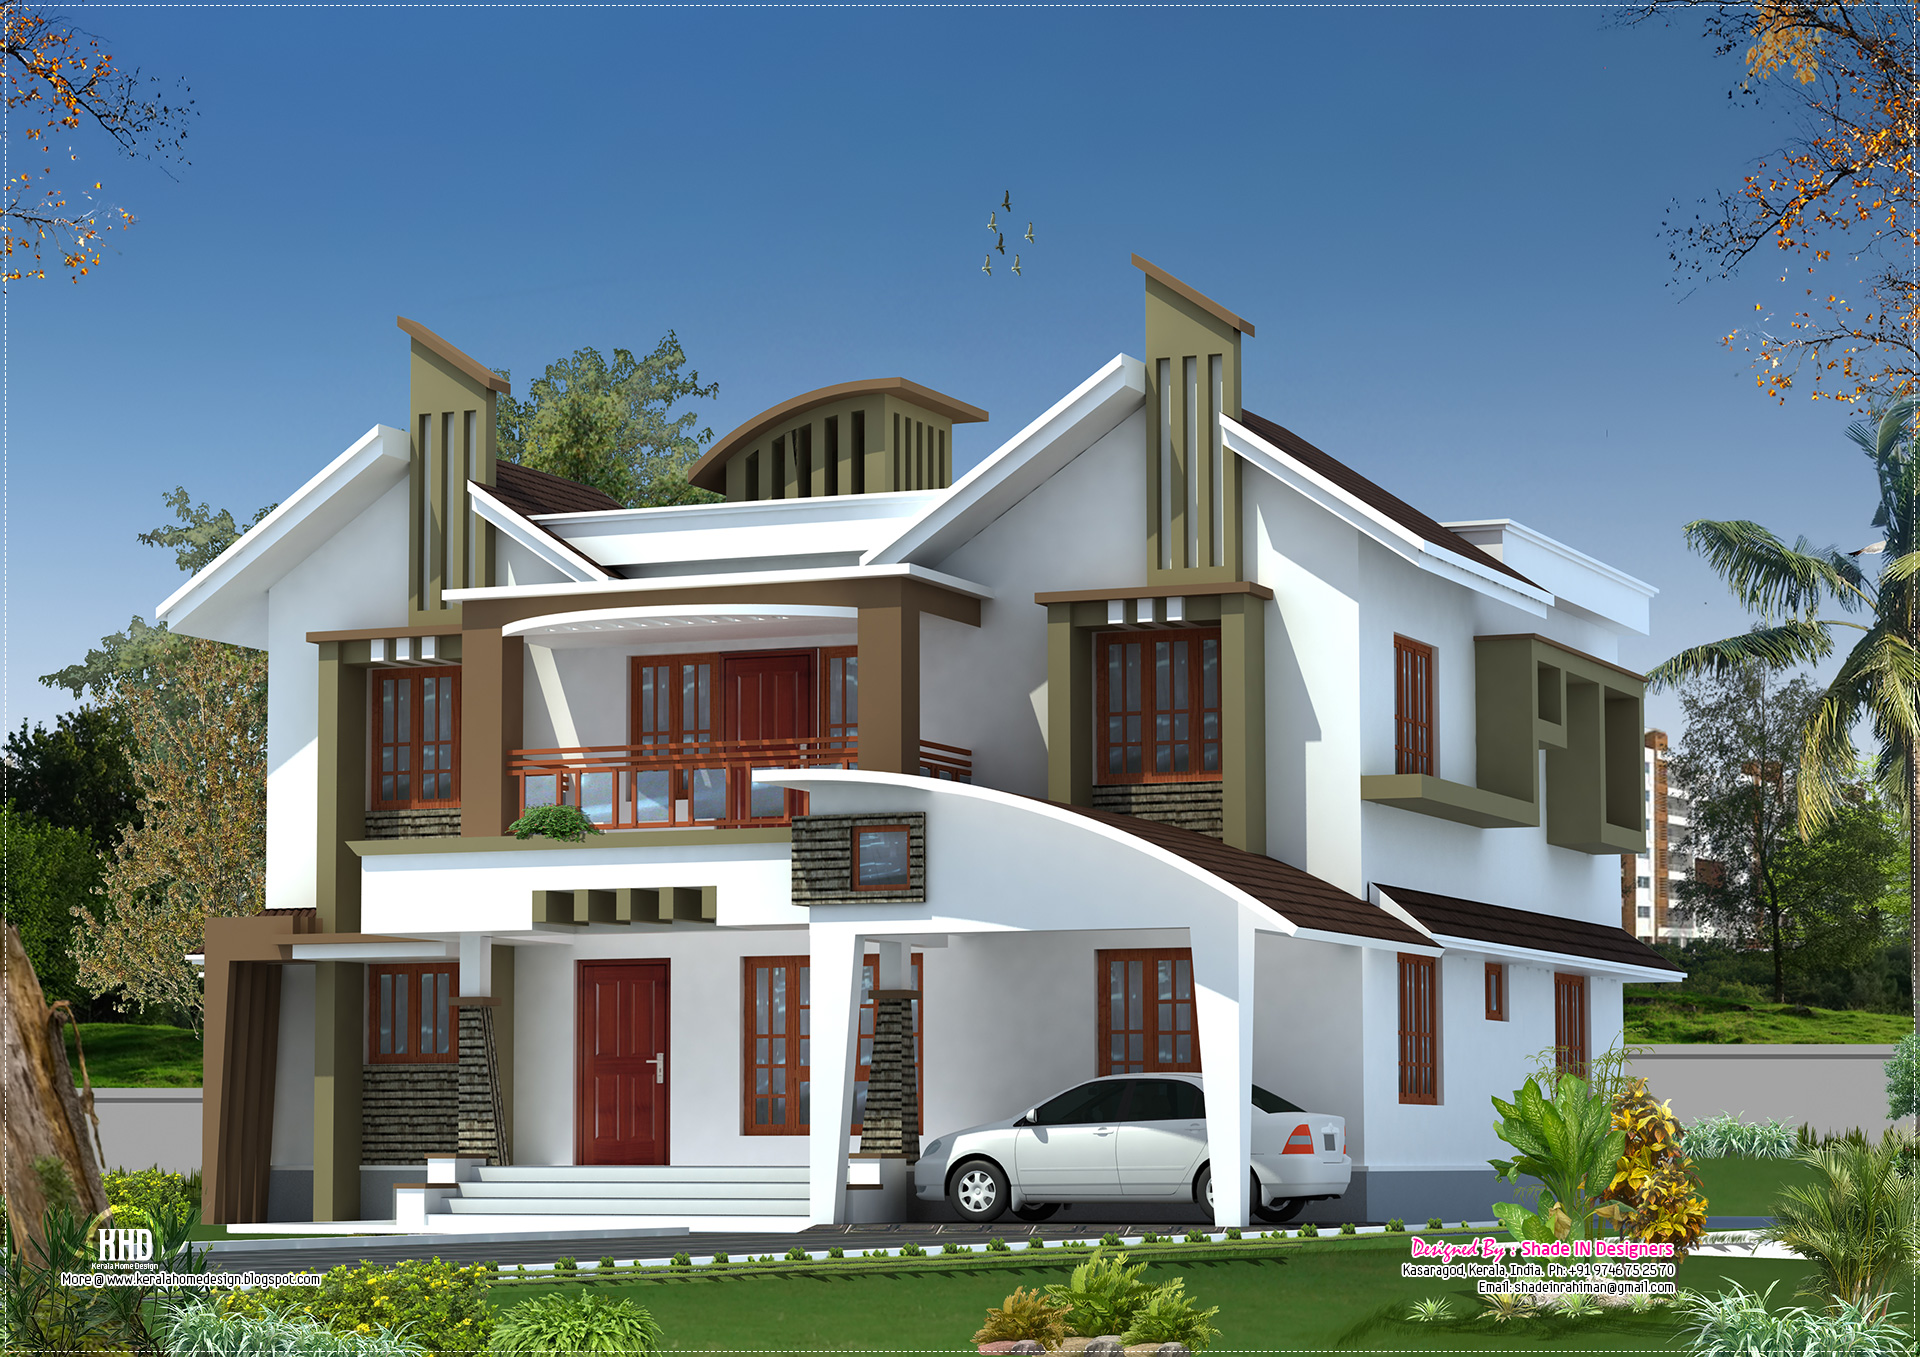 Modern house elevation from kasaragod kerala kerala for Modern house design us